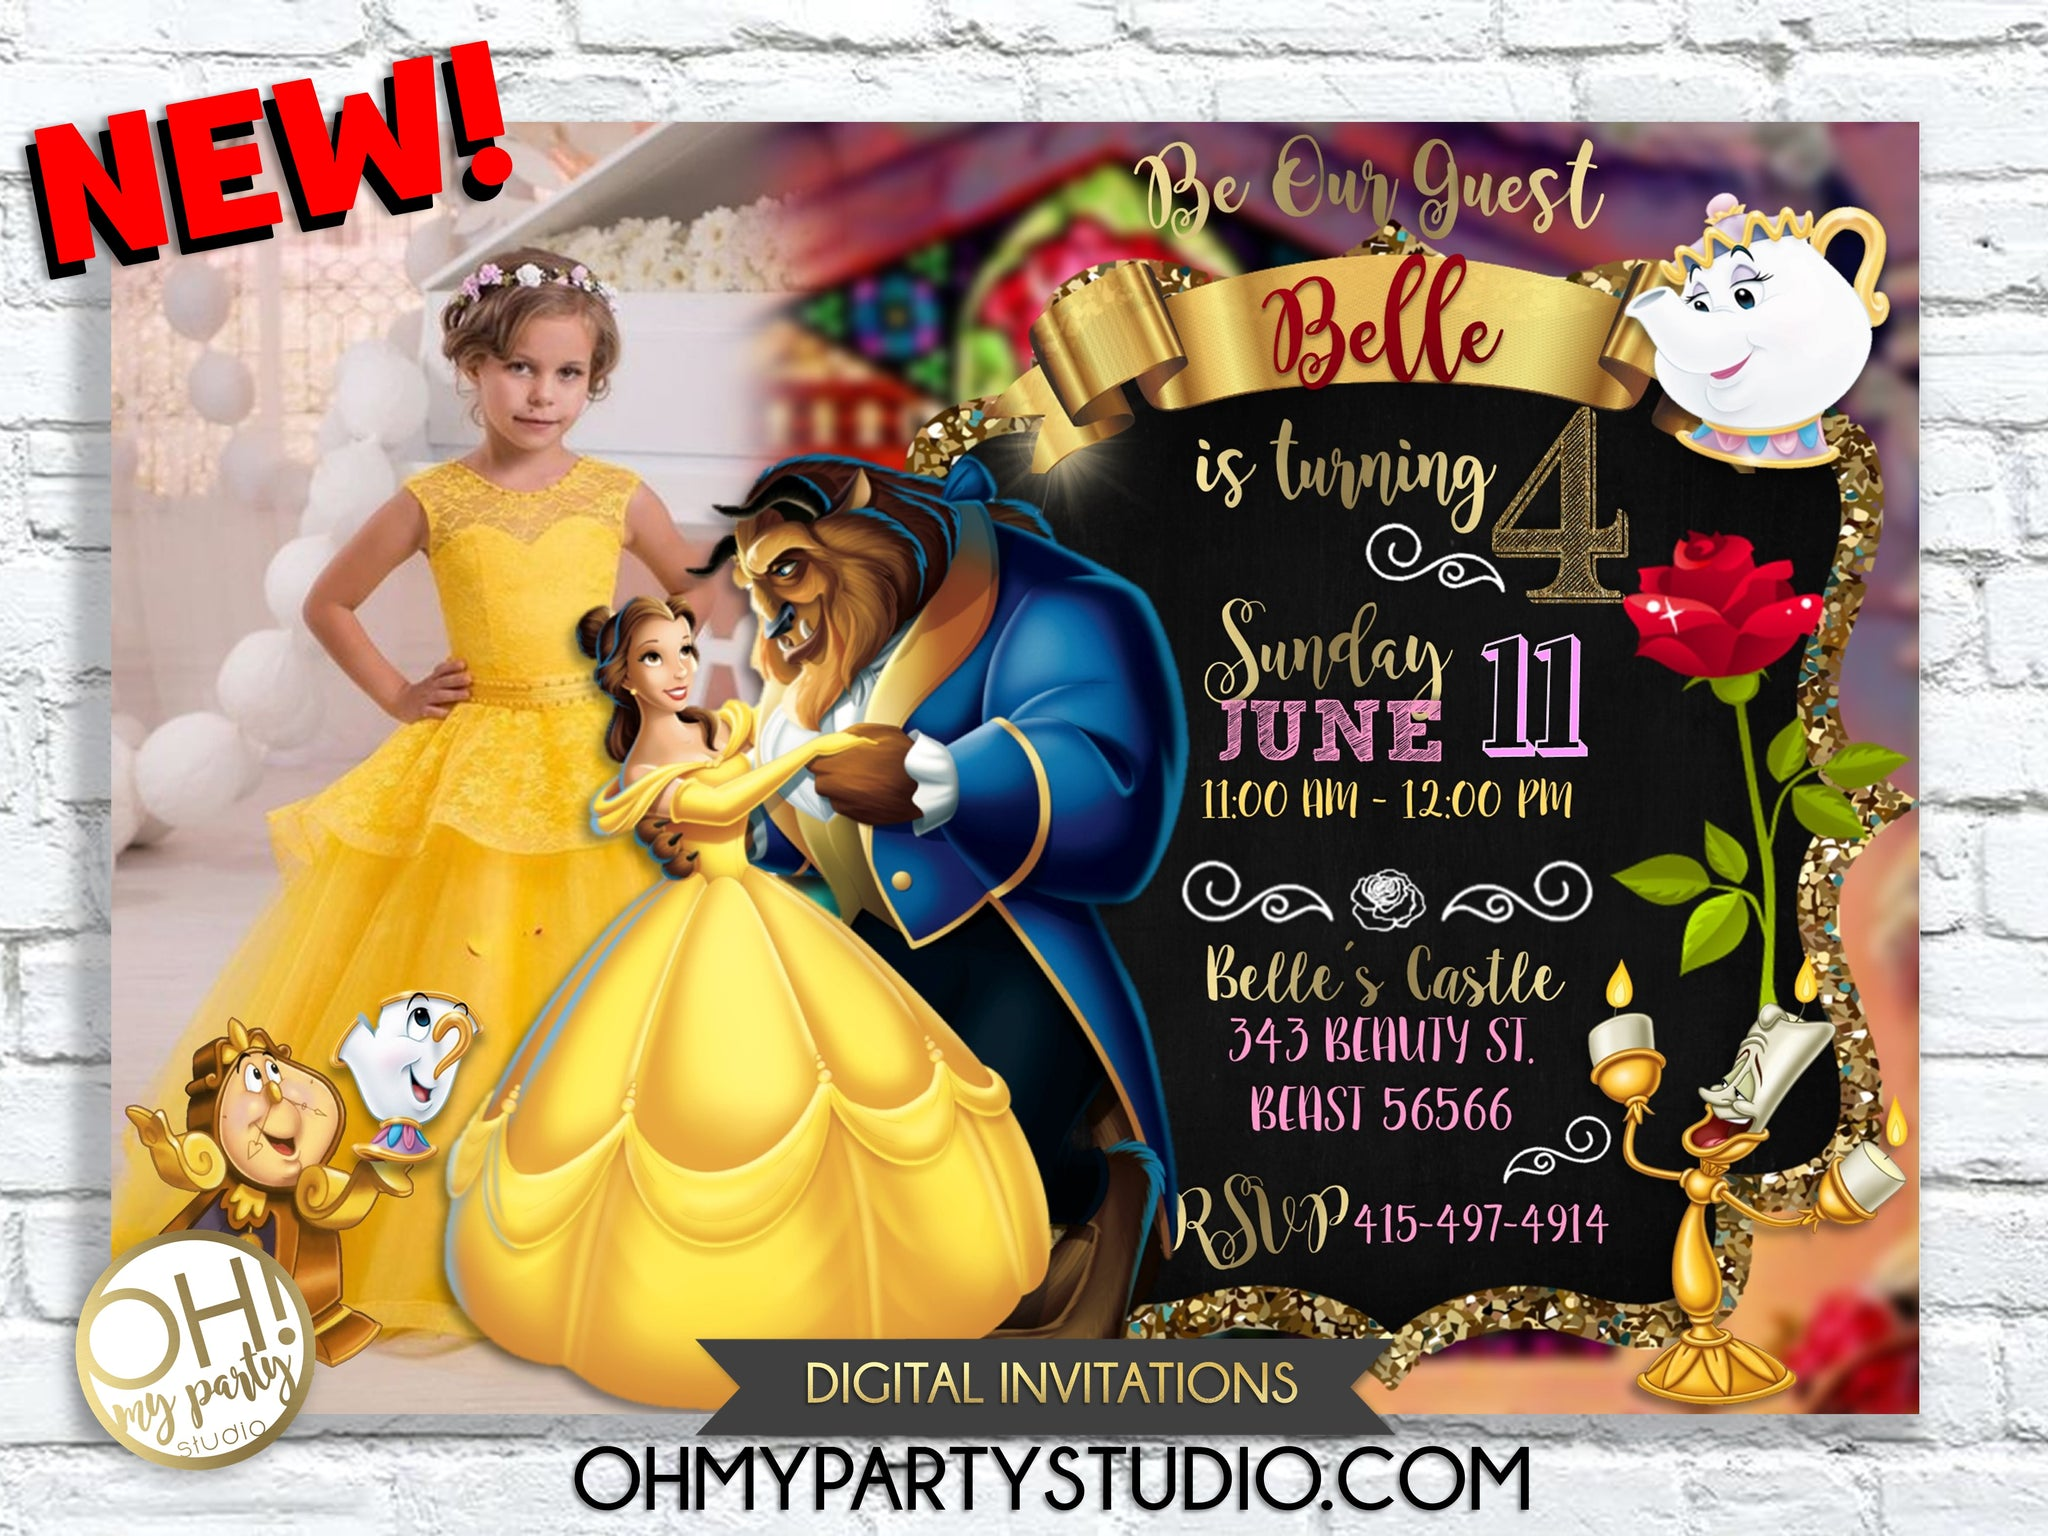 Beauty and The Beast Invitations, Beauty and The Beast Birthday Invitation, Beauty Invitation Printable File, Beauty Belle Invitation,Royal Celebration Birthday Party, Princess Birthday Party Invite